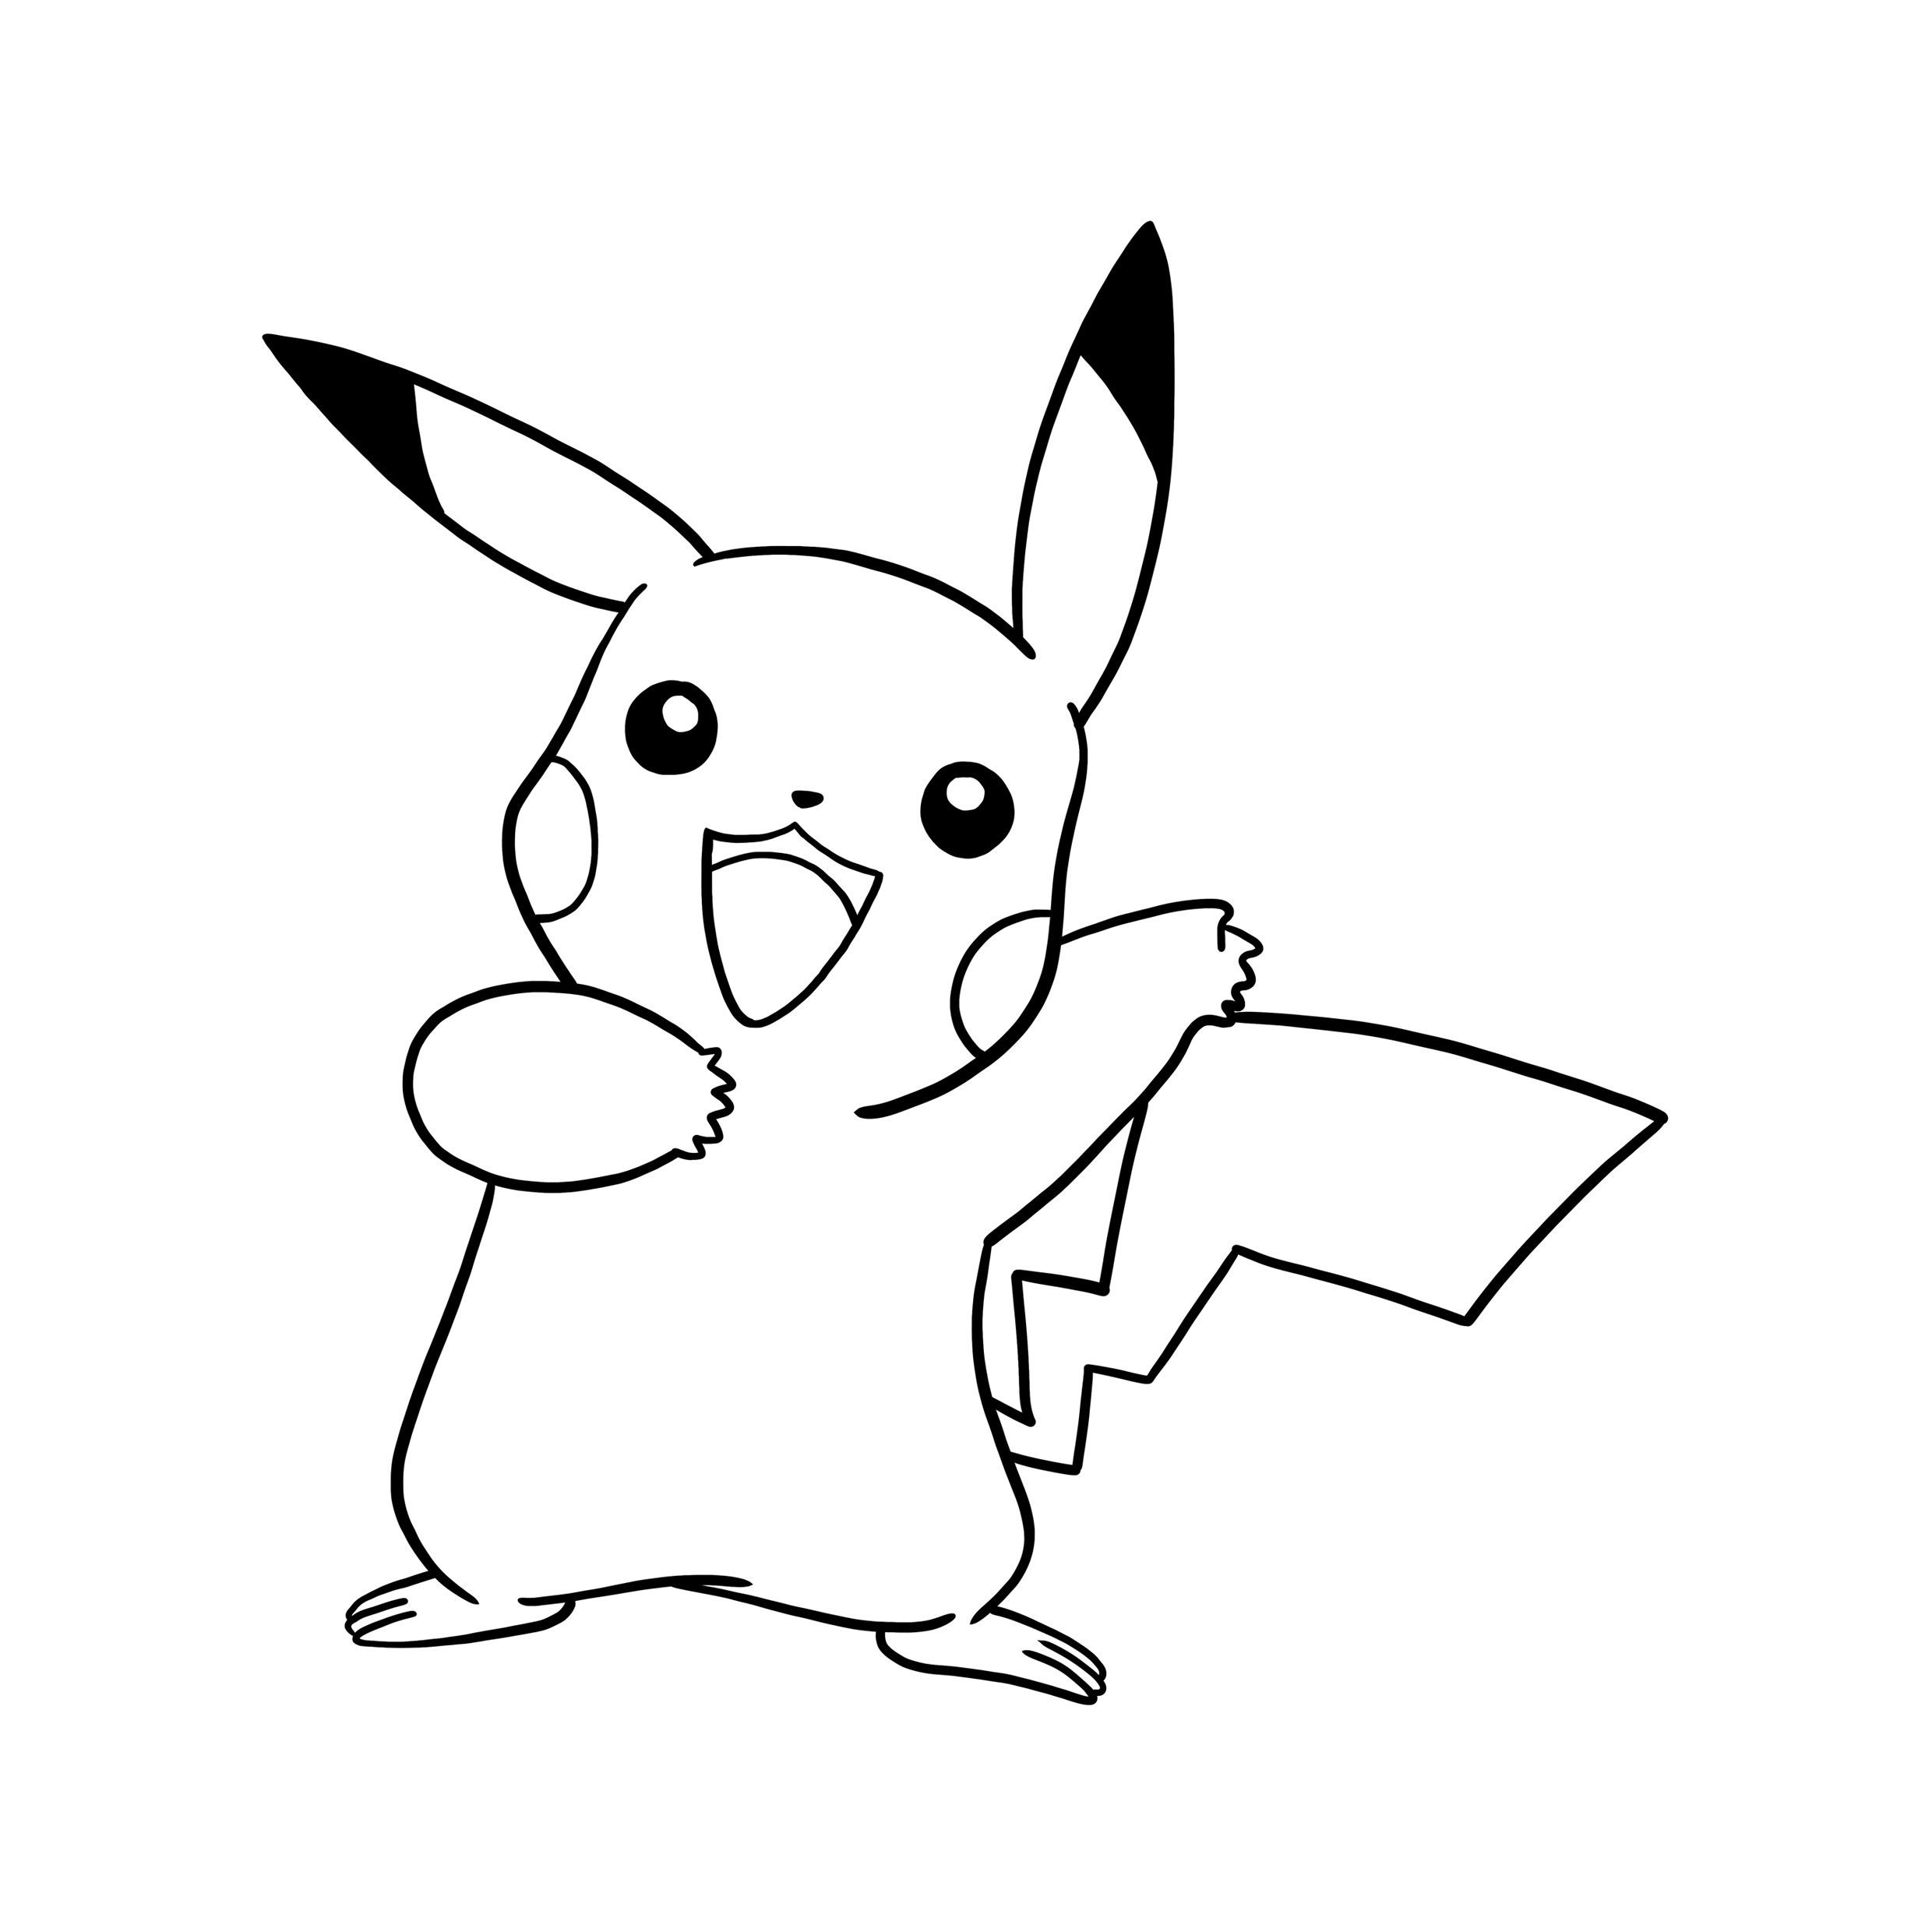 pikachu drawing coloring pages pikachu easy drawing free download on clipartmag drawing pages coloring pikachu